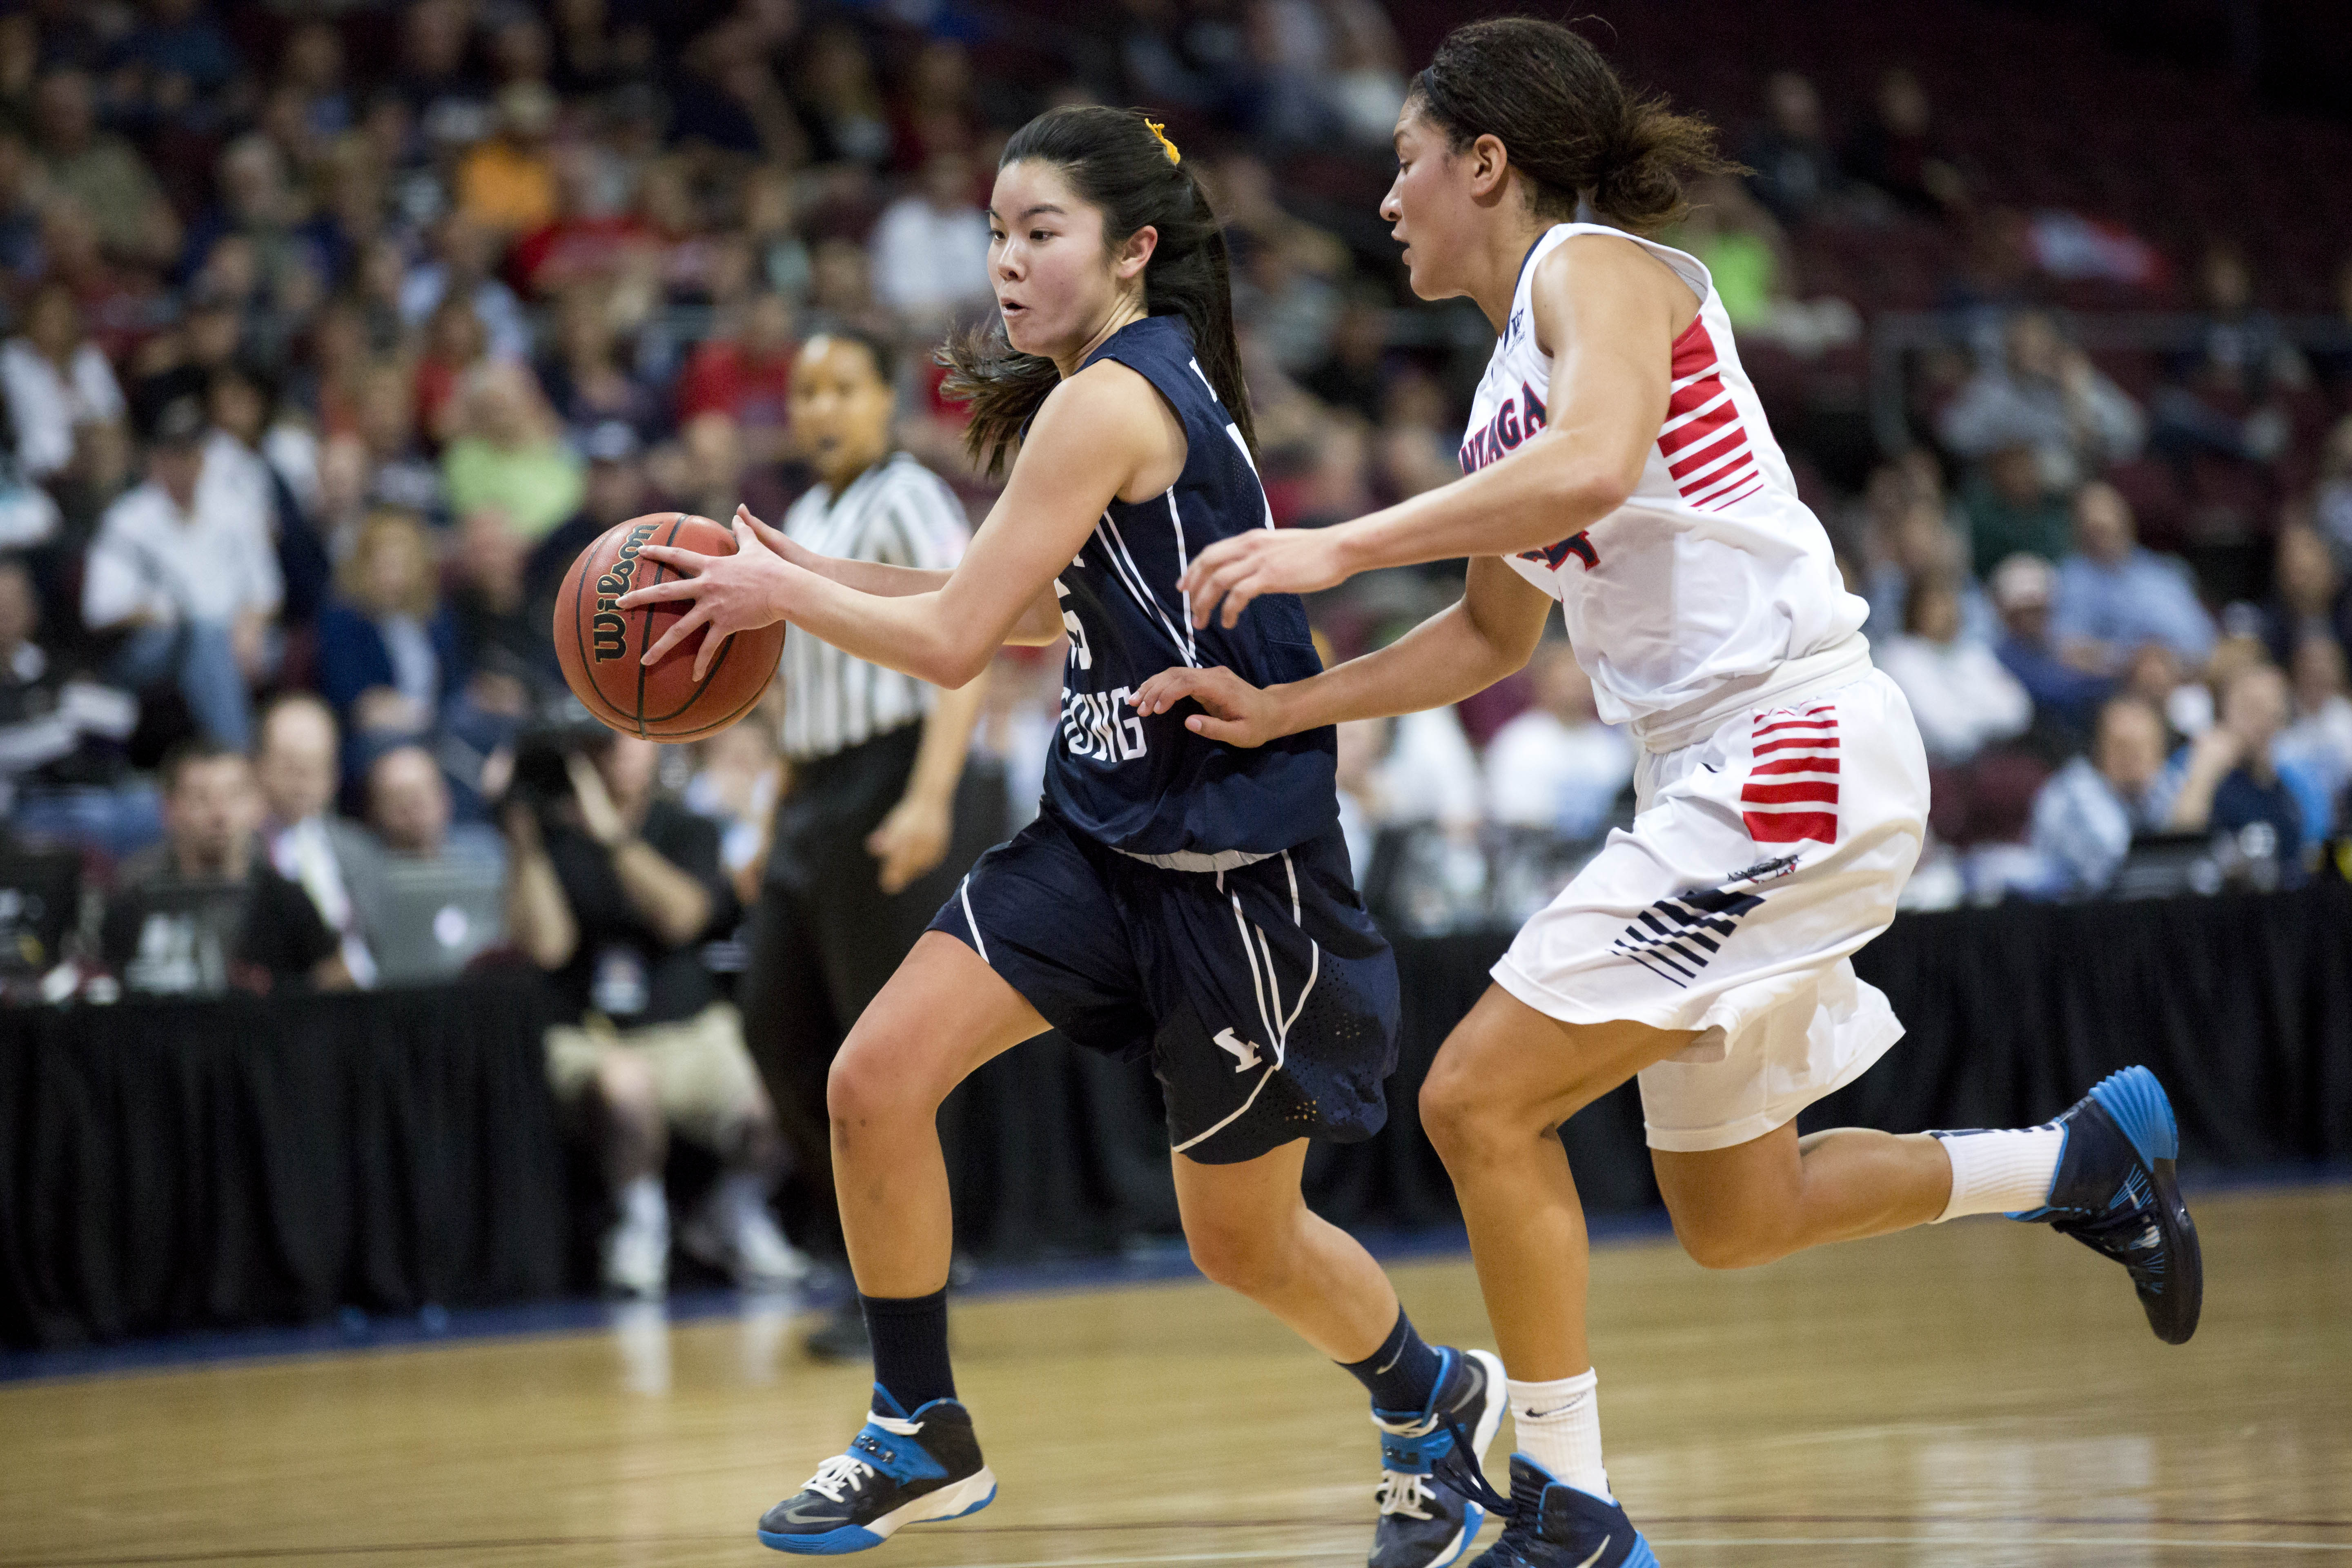 Kylie Maeda dribbles the ball in the WCC Championship game against Gonzaga. Photo by Sarah Hill